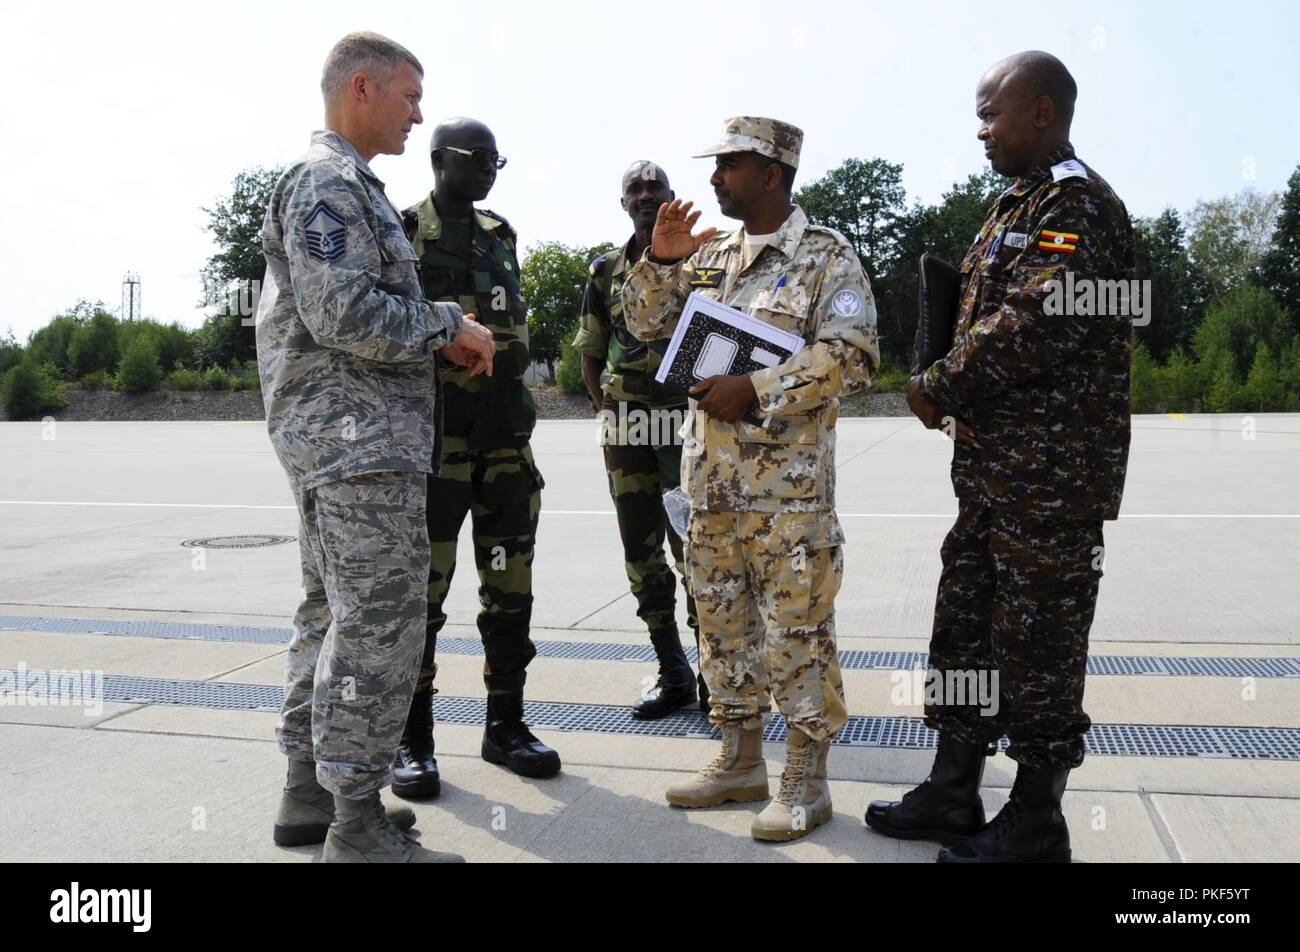 U.S. Air Force Senior Master Sgt. Ronald Robinette, Leaders Production Superintendent, assigned to 86th Air Maintenance Squadron, converses with participants of African Partnership Flight, hosted by U.S. Air Forces Africa and co-hosted by Mauritania and Senegal at Ramstein Air Base, Germany, Aug. 7, 2018. The APF program is Air Forces in Africa's premier security cooperation program with African partner nations to improve professional military aviation knowledge and skills. - Stock Image